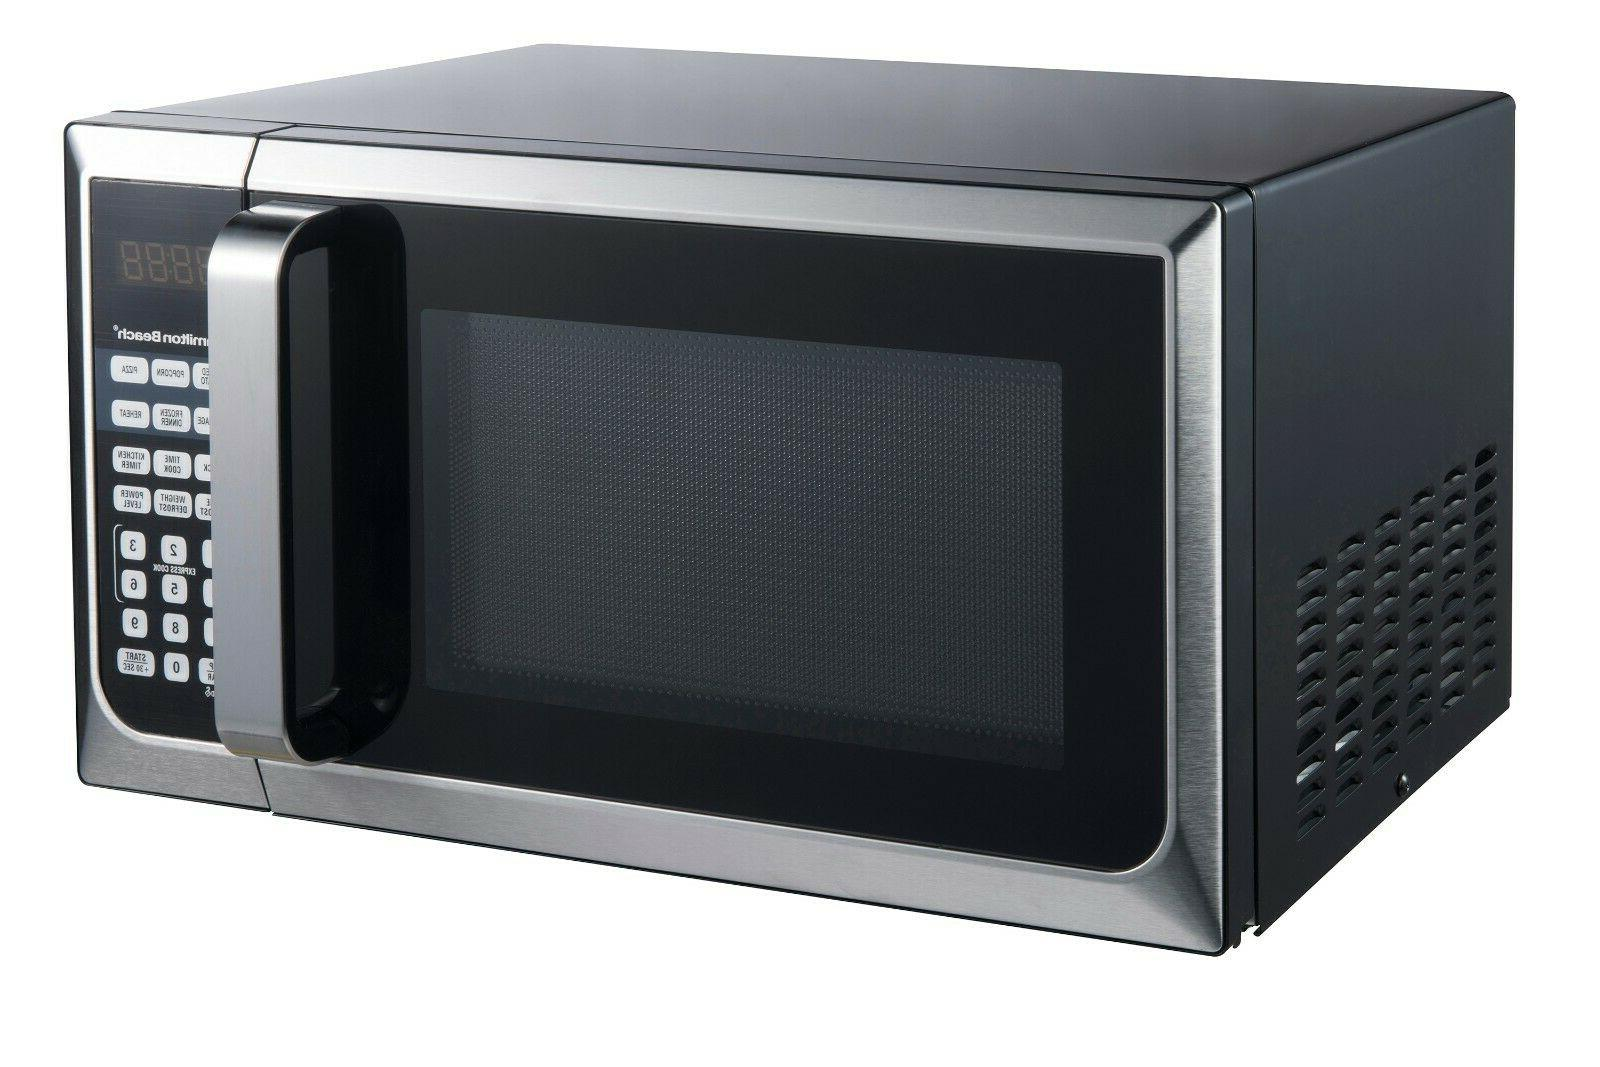 STAINLESS 0.9 Microwave 900W countertop